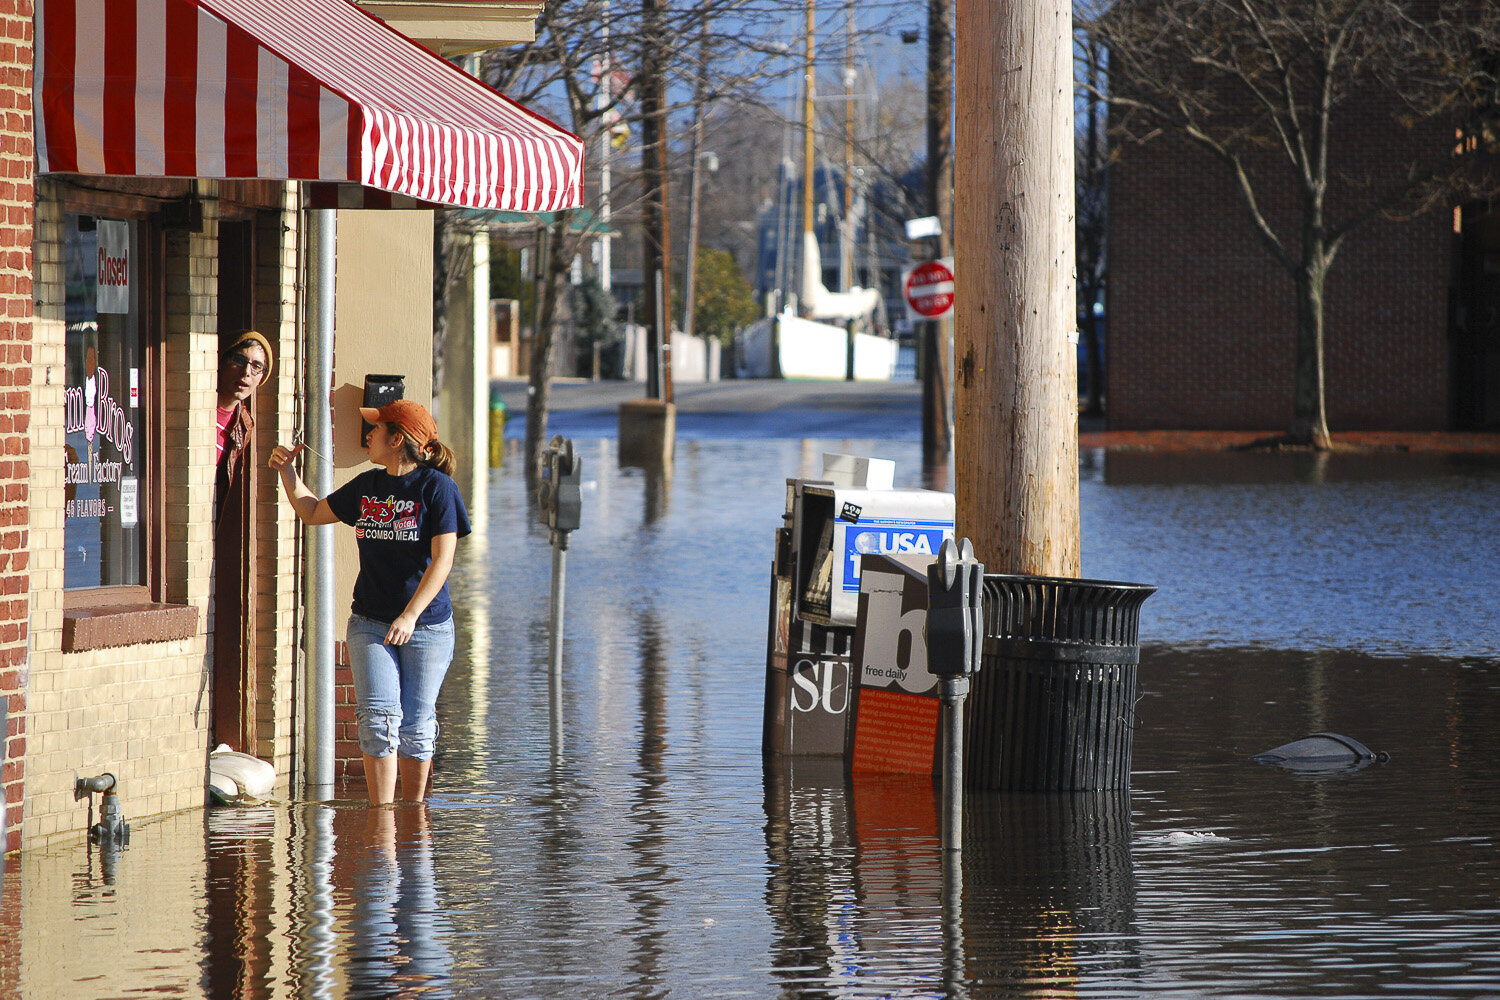 What rising seas mean for local economies